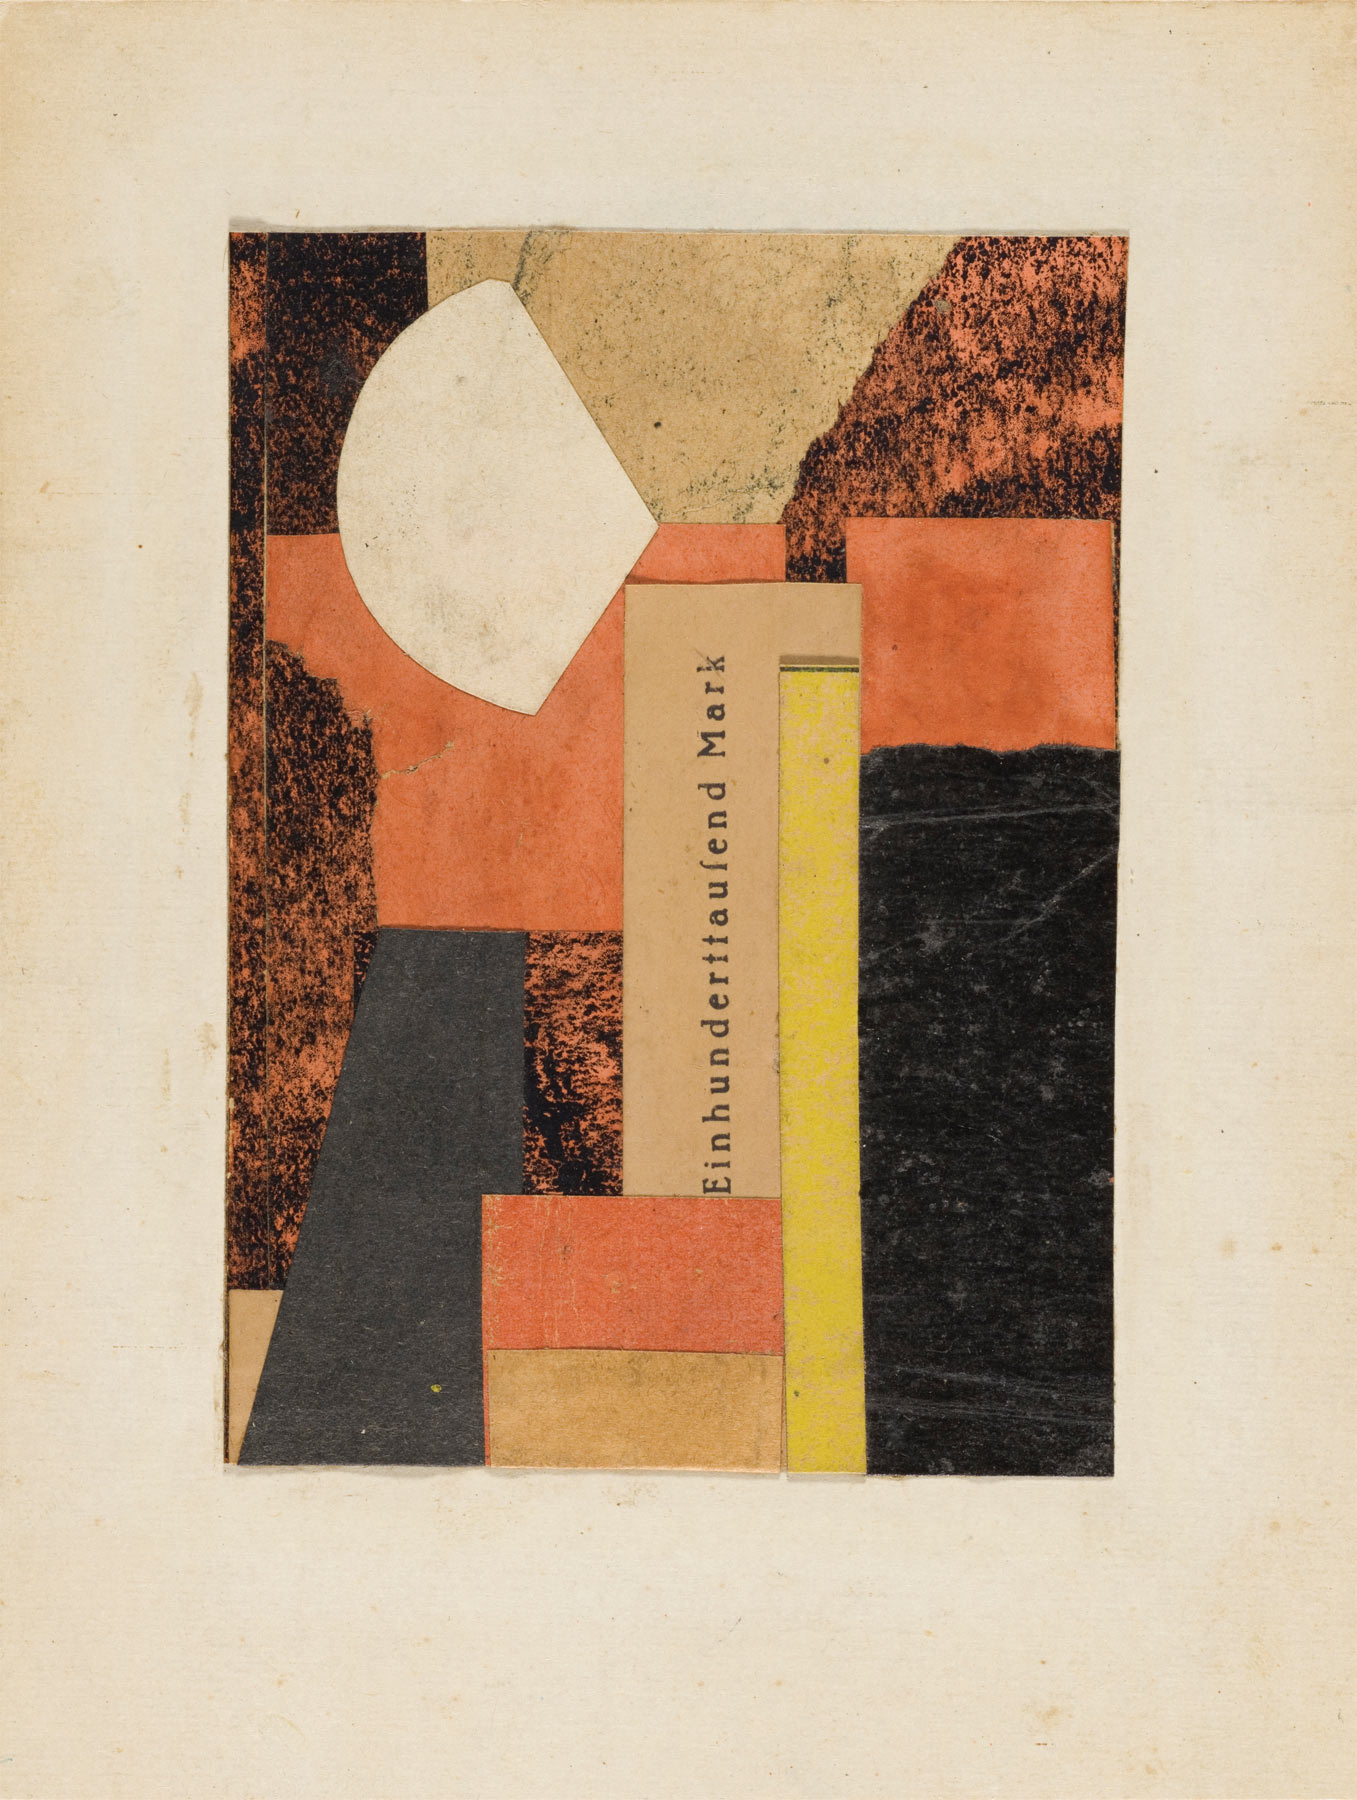 Kurt Schwitters, Untitled (One Hundred Thousand Marks) (1925 circa; collage su carta, 12 x 9 cm; Los Angeles, Los Angeles County Museum of Art)